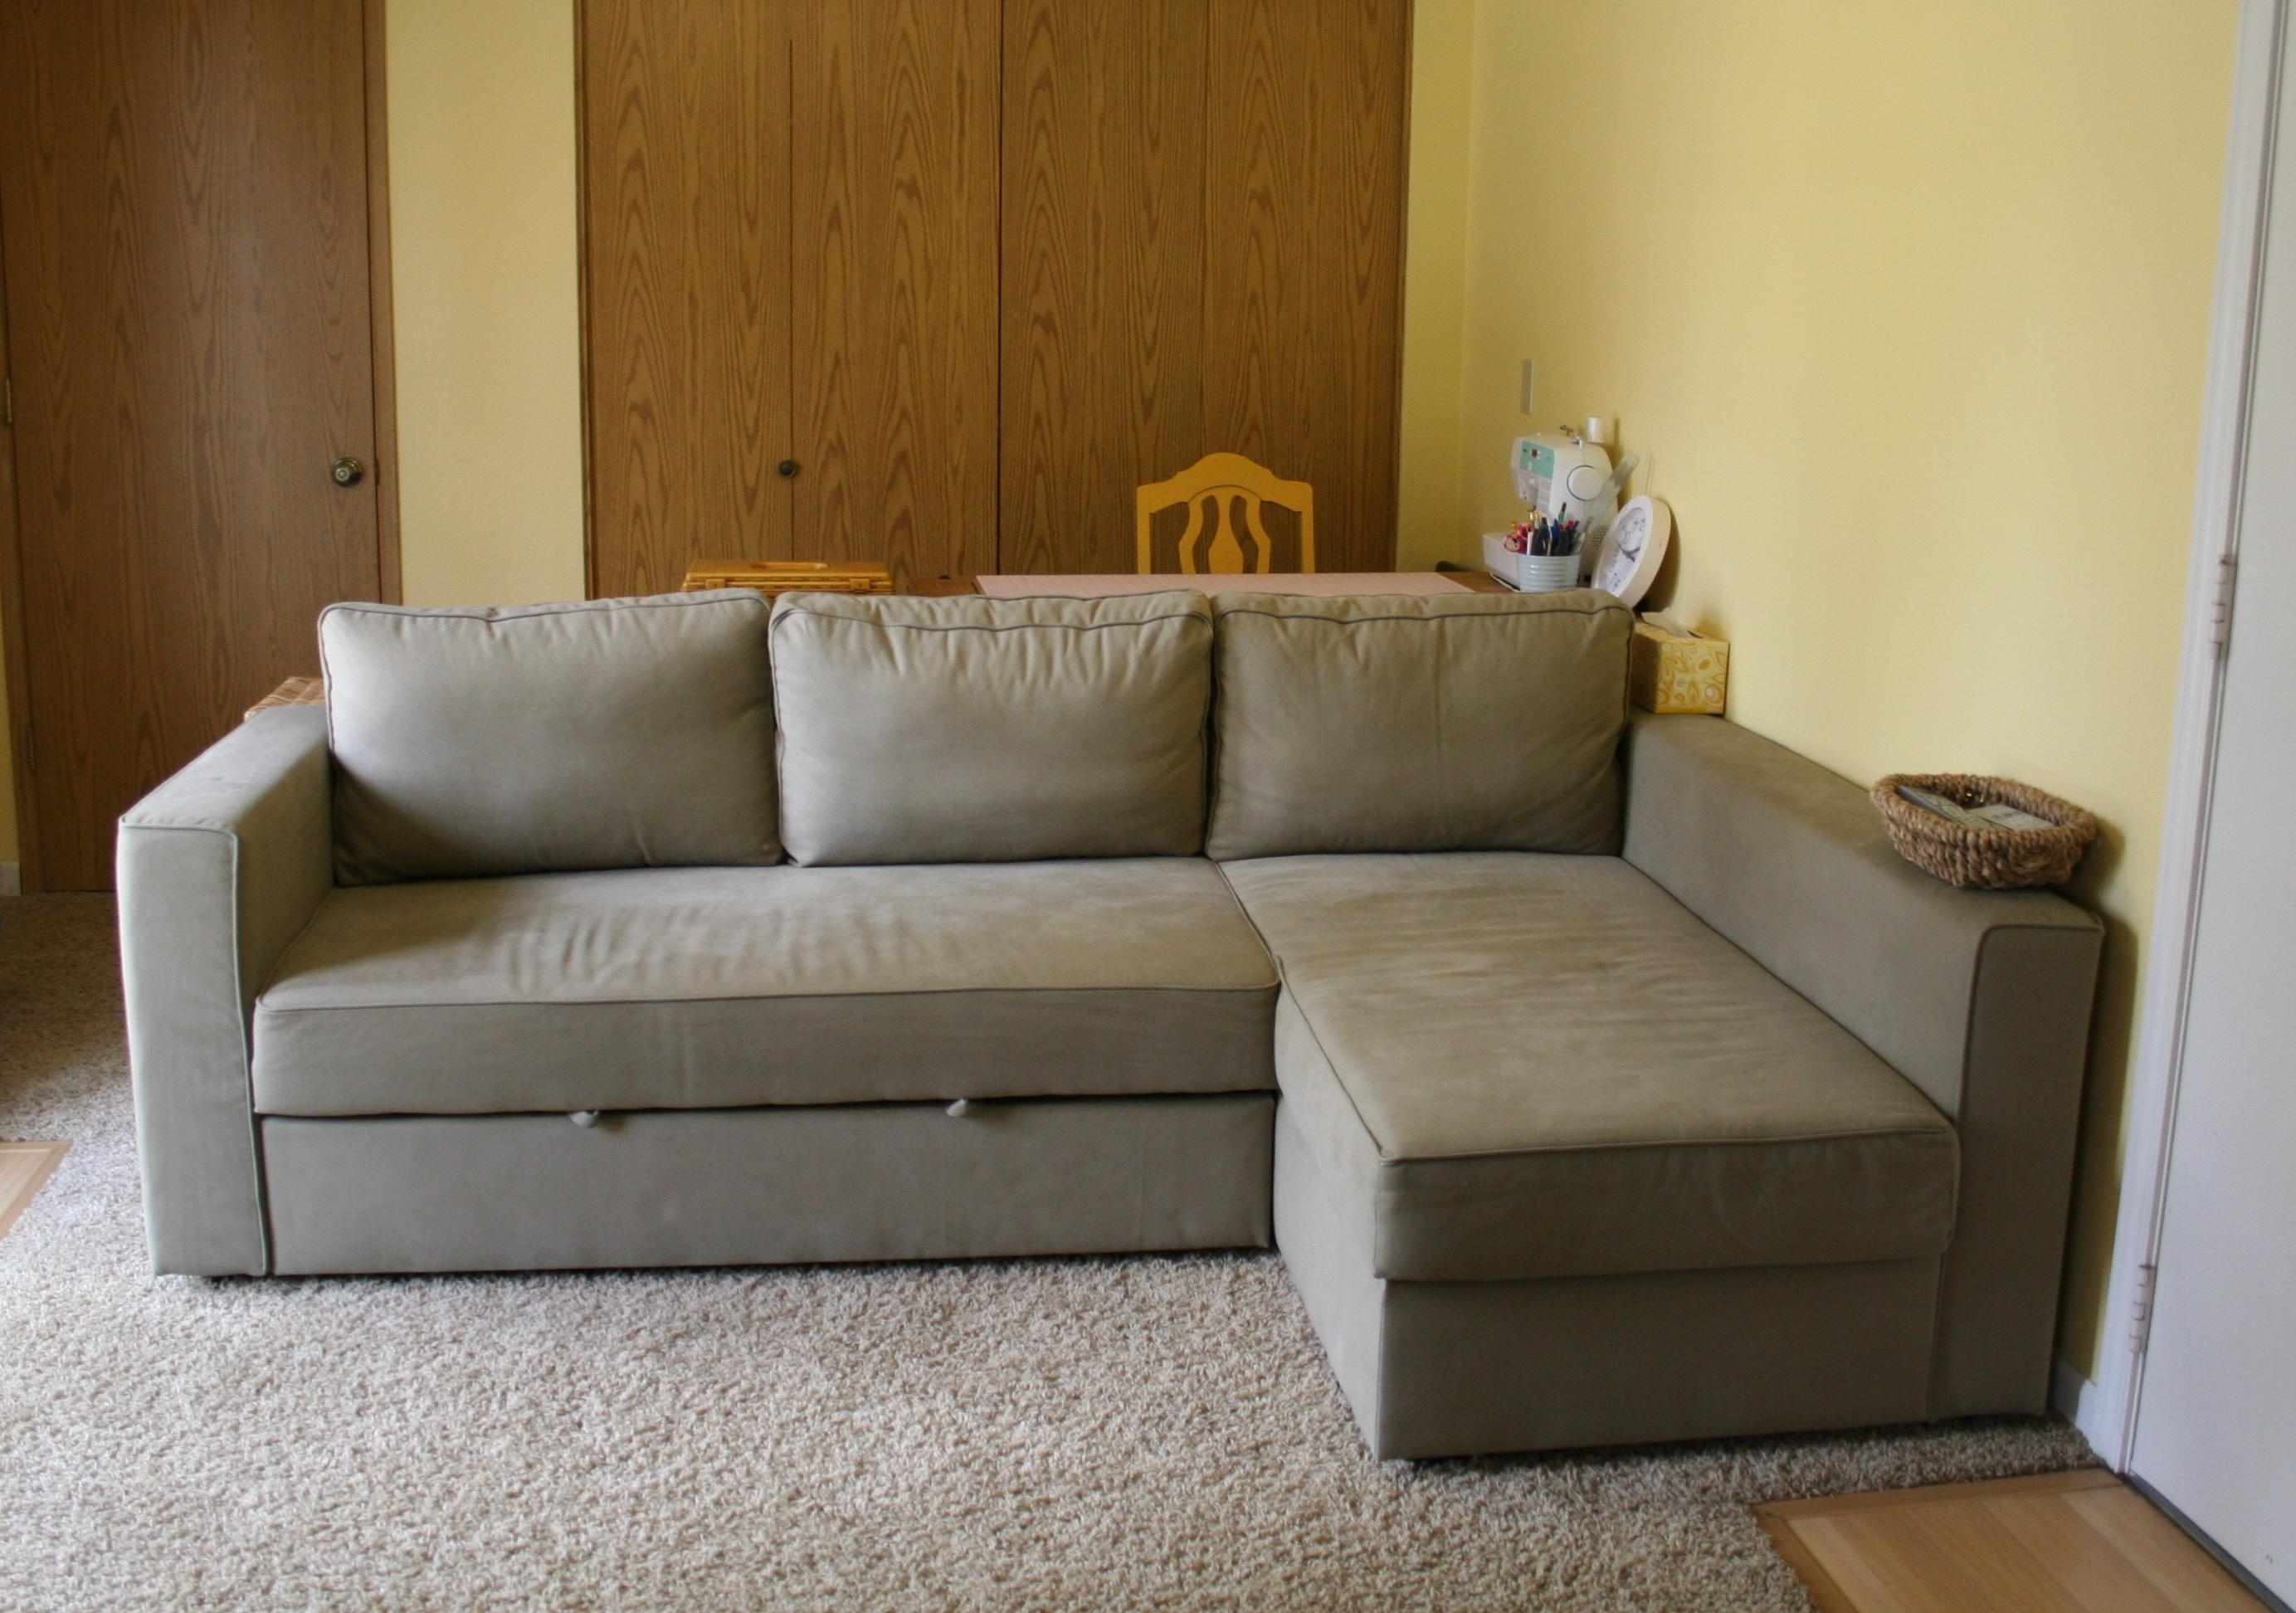 Grey Sectional Sofas Ikea | Tehranmix Decoration Intended For Ikea Sectional Sleeper Sofa (Image 5 of 20)